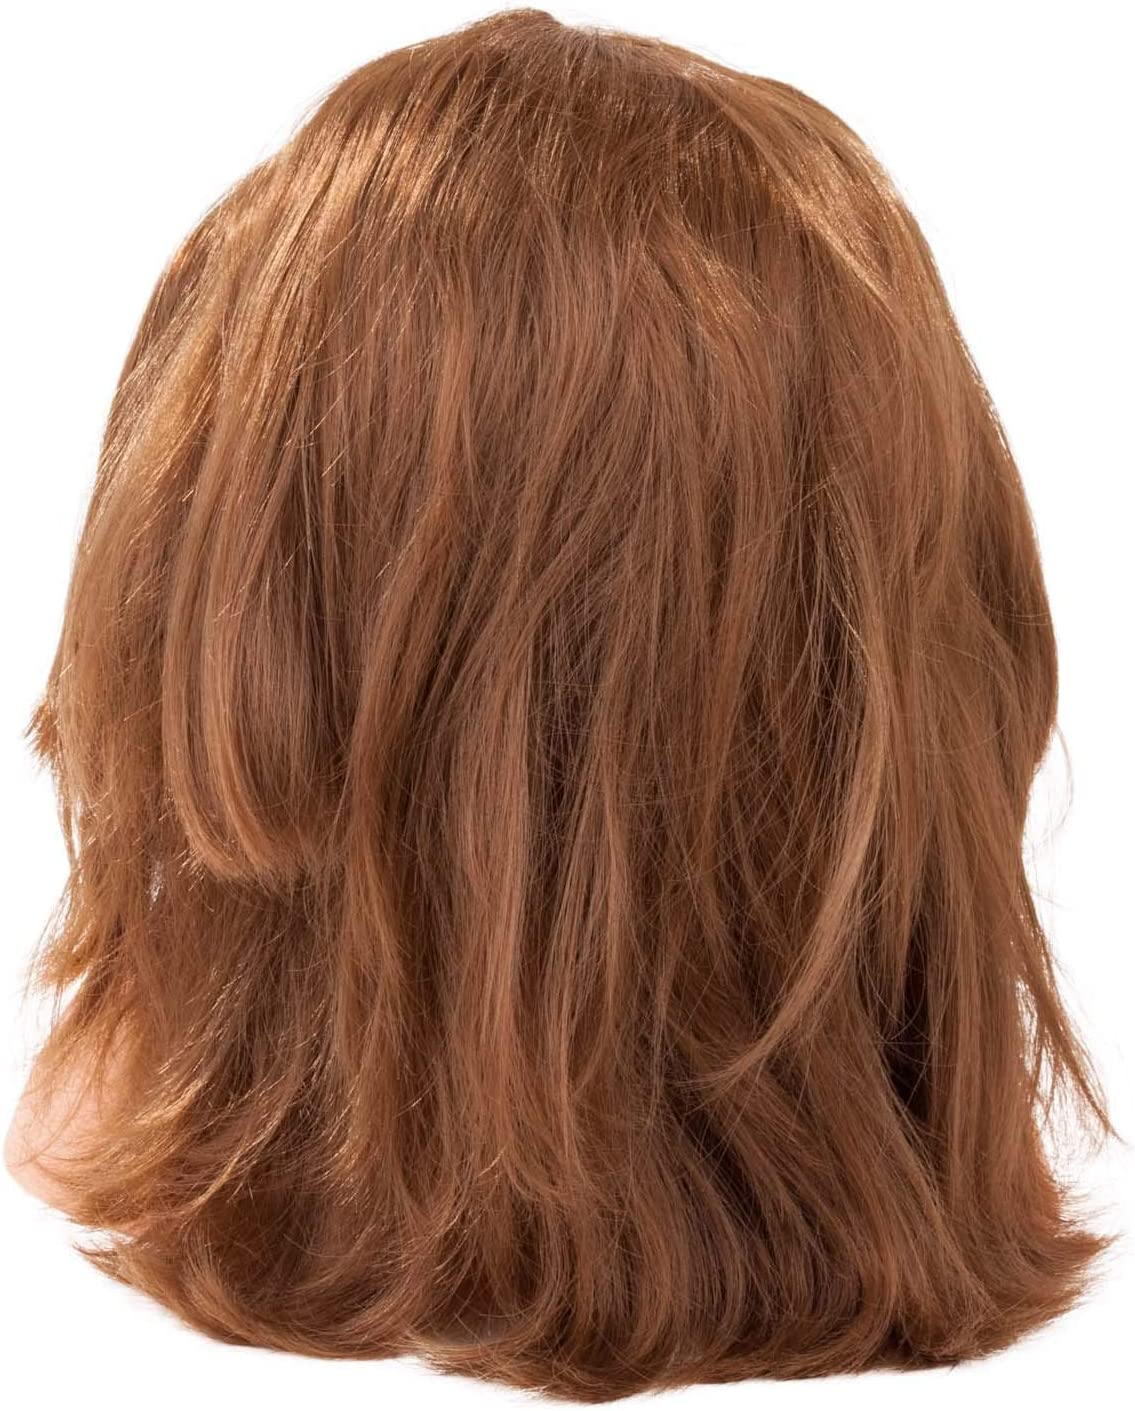 make-up hair dressing head with 58 pieces brown eyes and accessories suitable agegroup 3+ Gotz 1192053 Styling head with brown hair